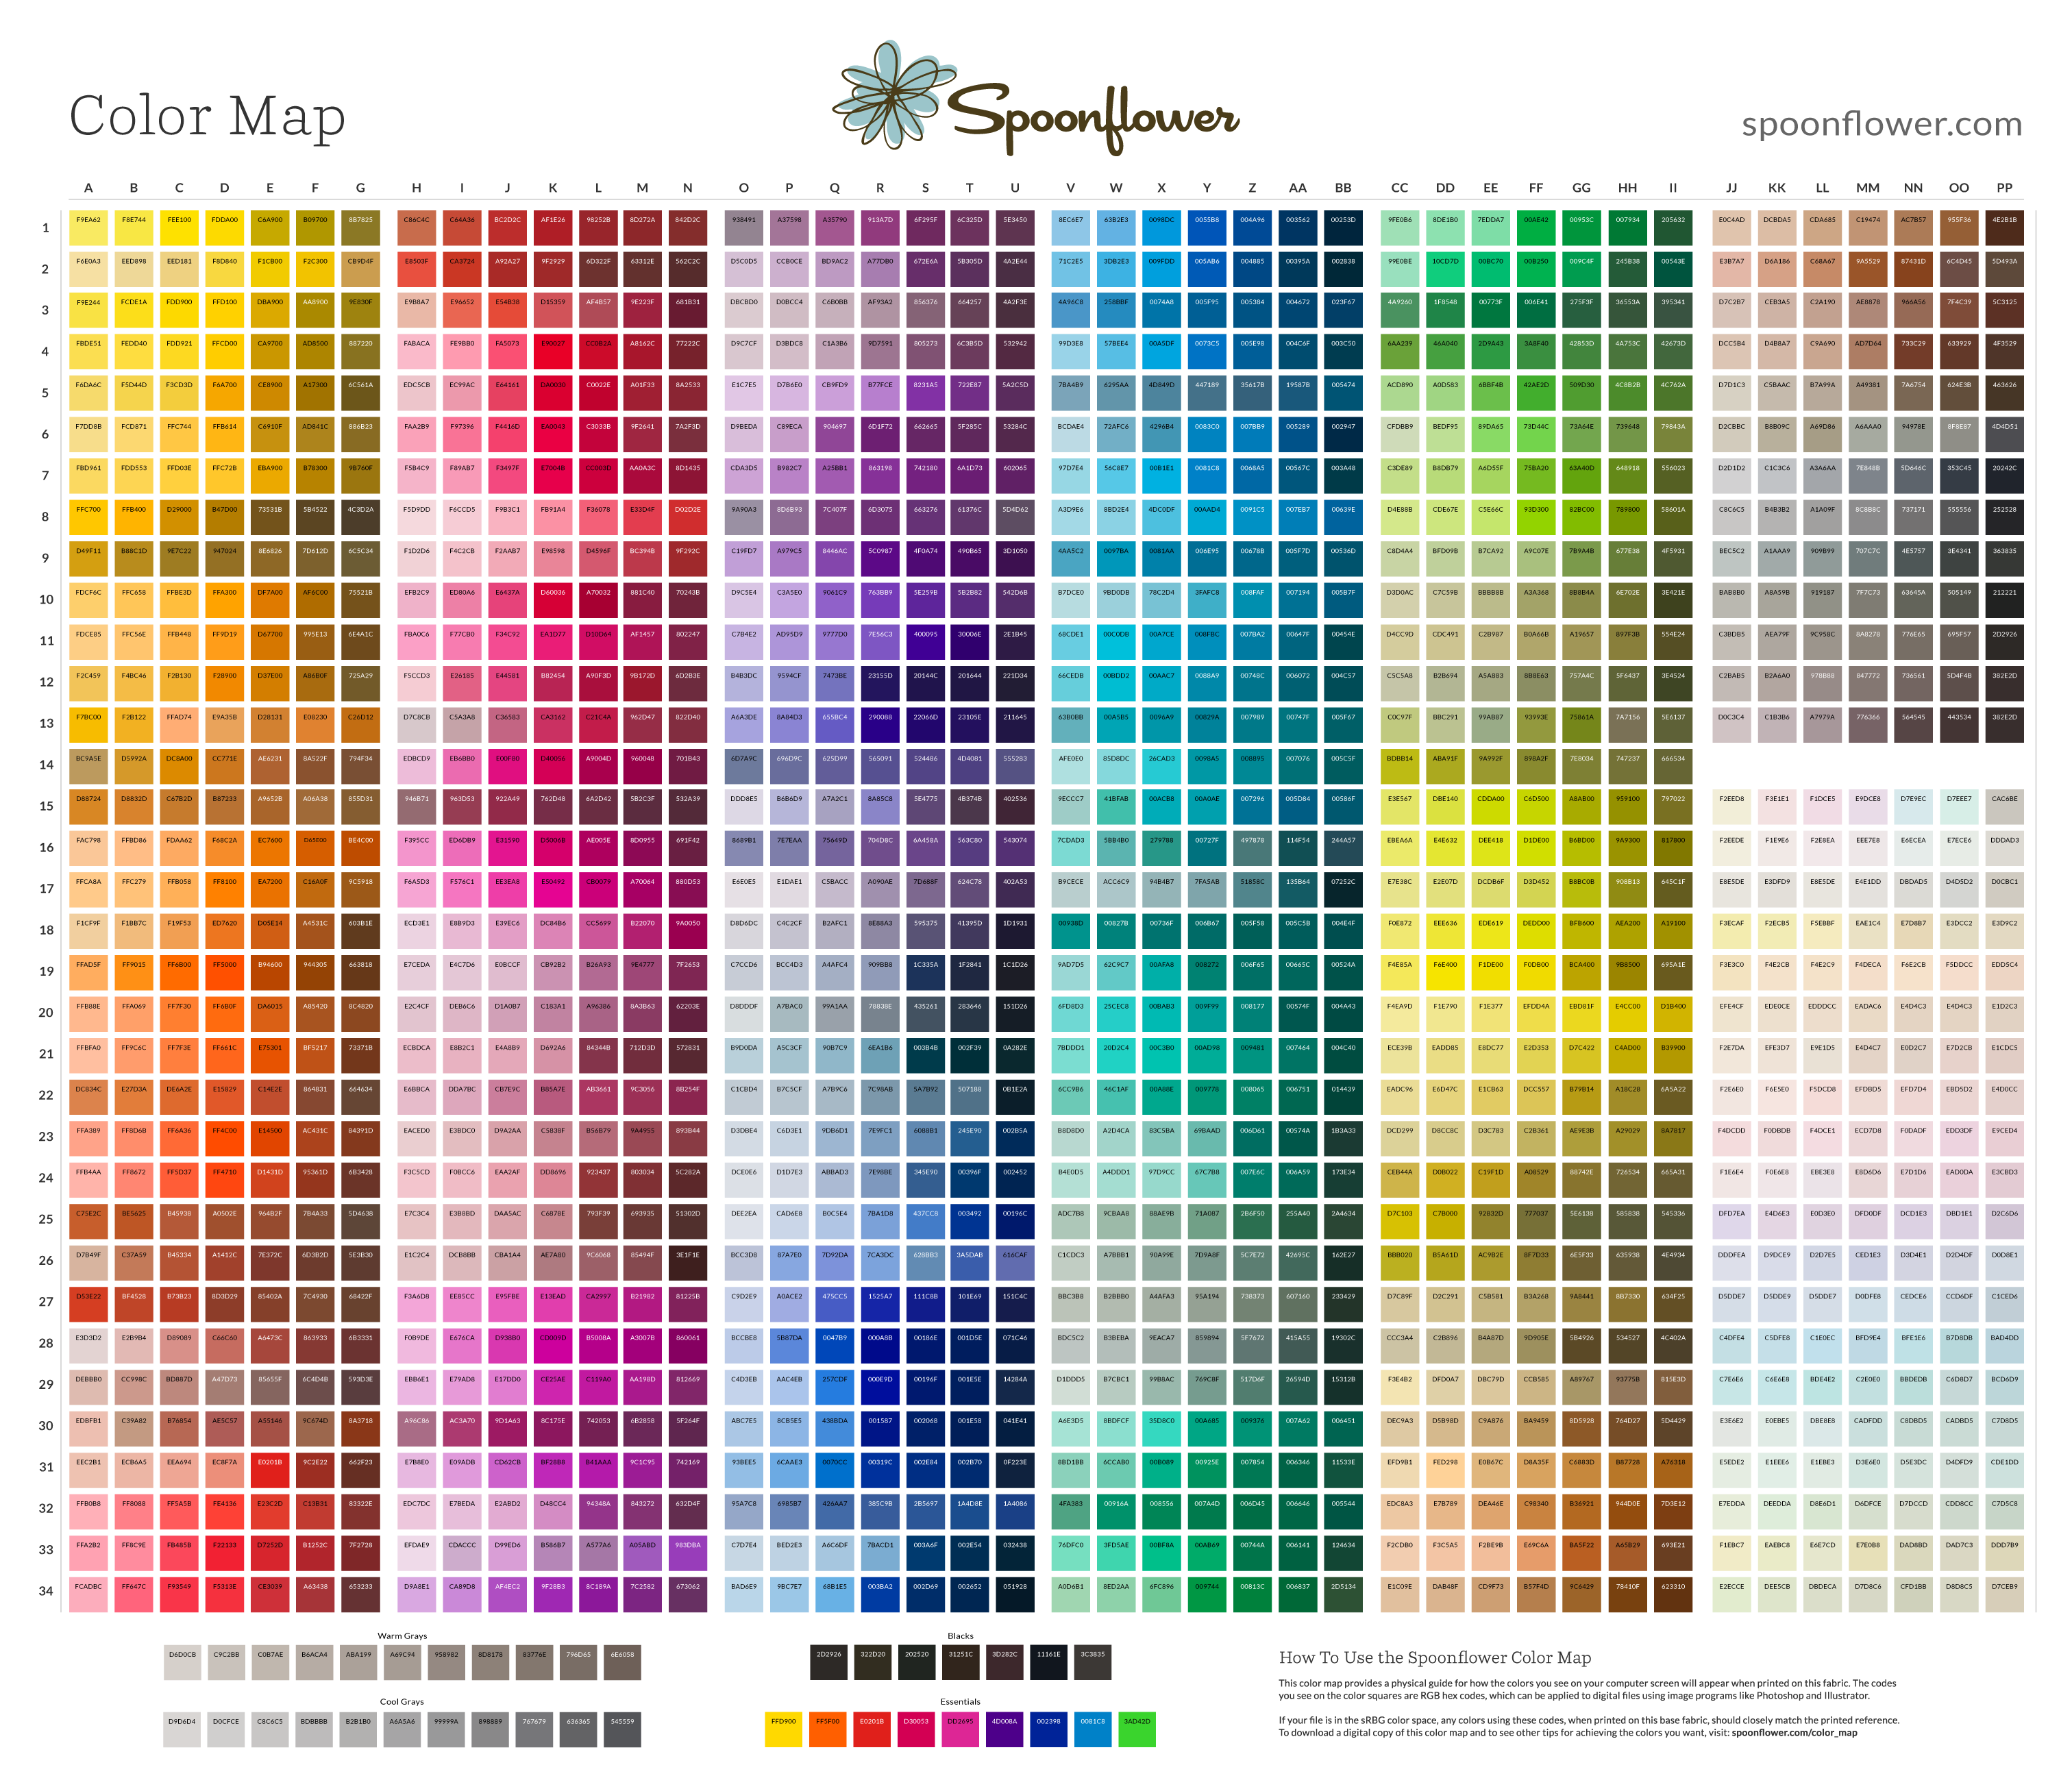 Red color code wolf online - Download A Digital Copy Of The Spoonflower Color Map